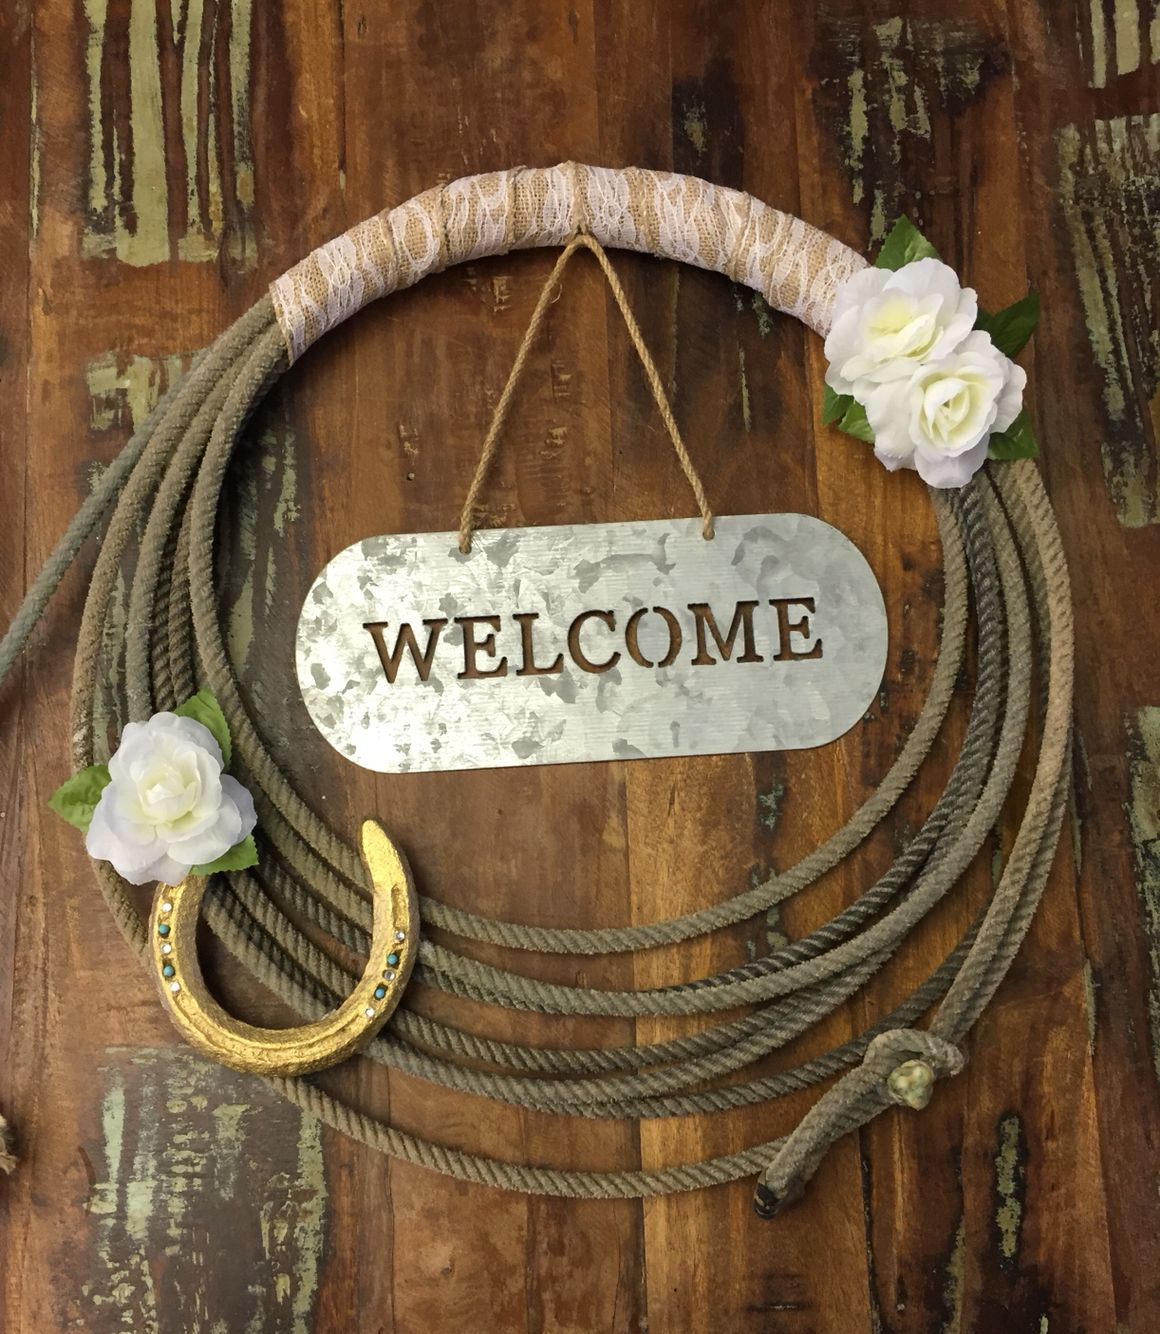 Diy Rope Craft Projects To Do At Home: Western Rope Wreath DIY Https://www.etsy.com/shop